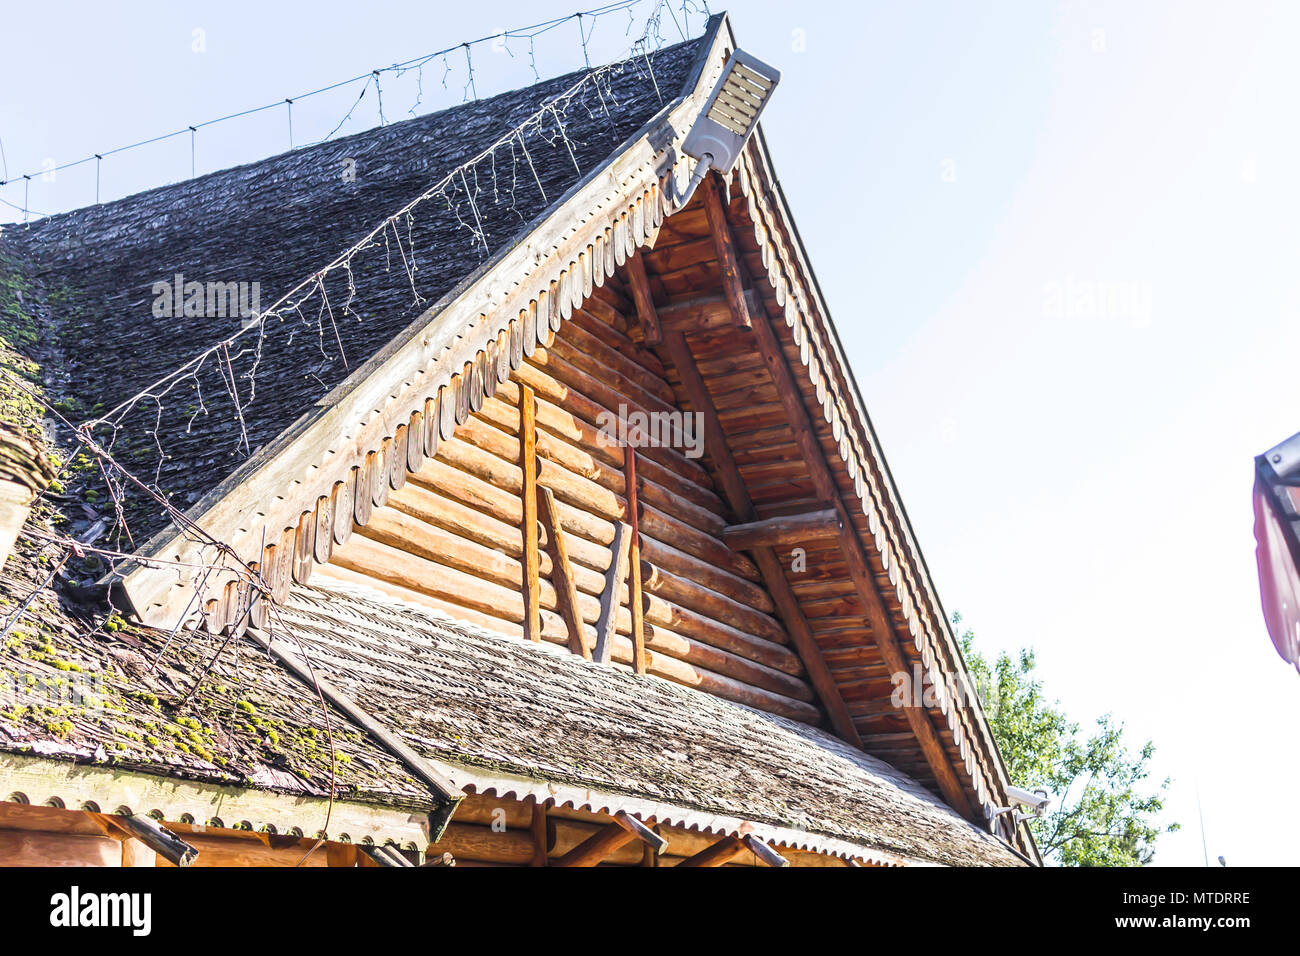 A gable wooden roof. Wooden decoration. The roof is covered with wooden shingles. The pediment is made of logs. - Stock Image